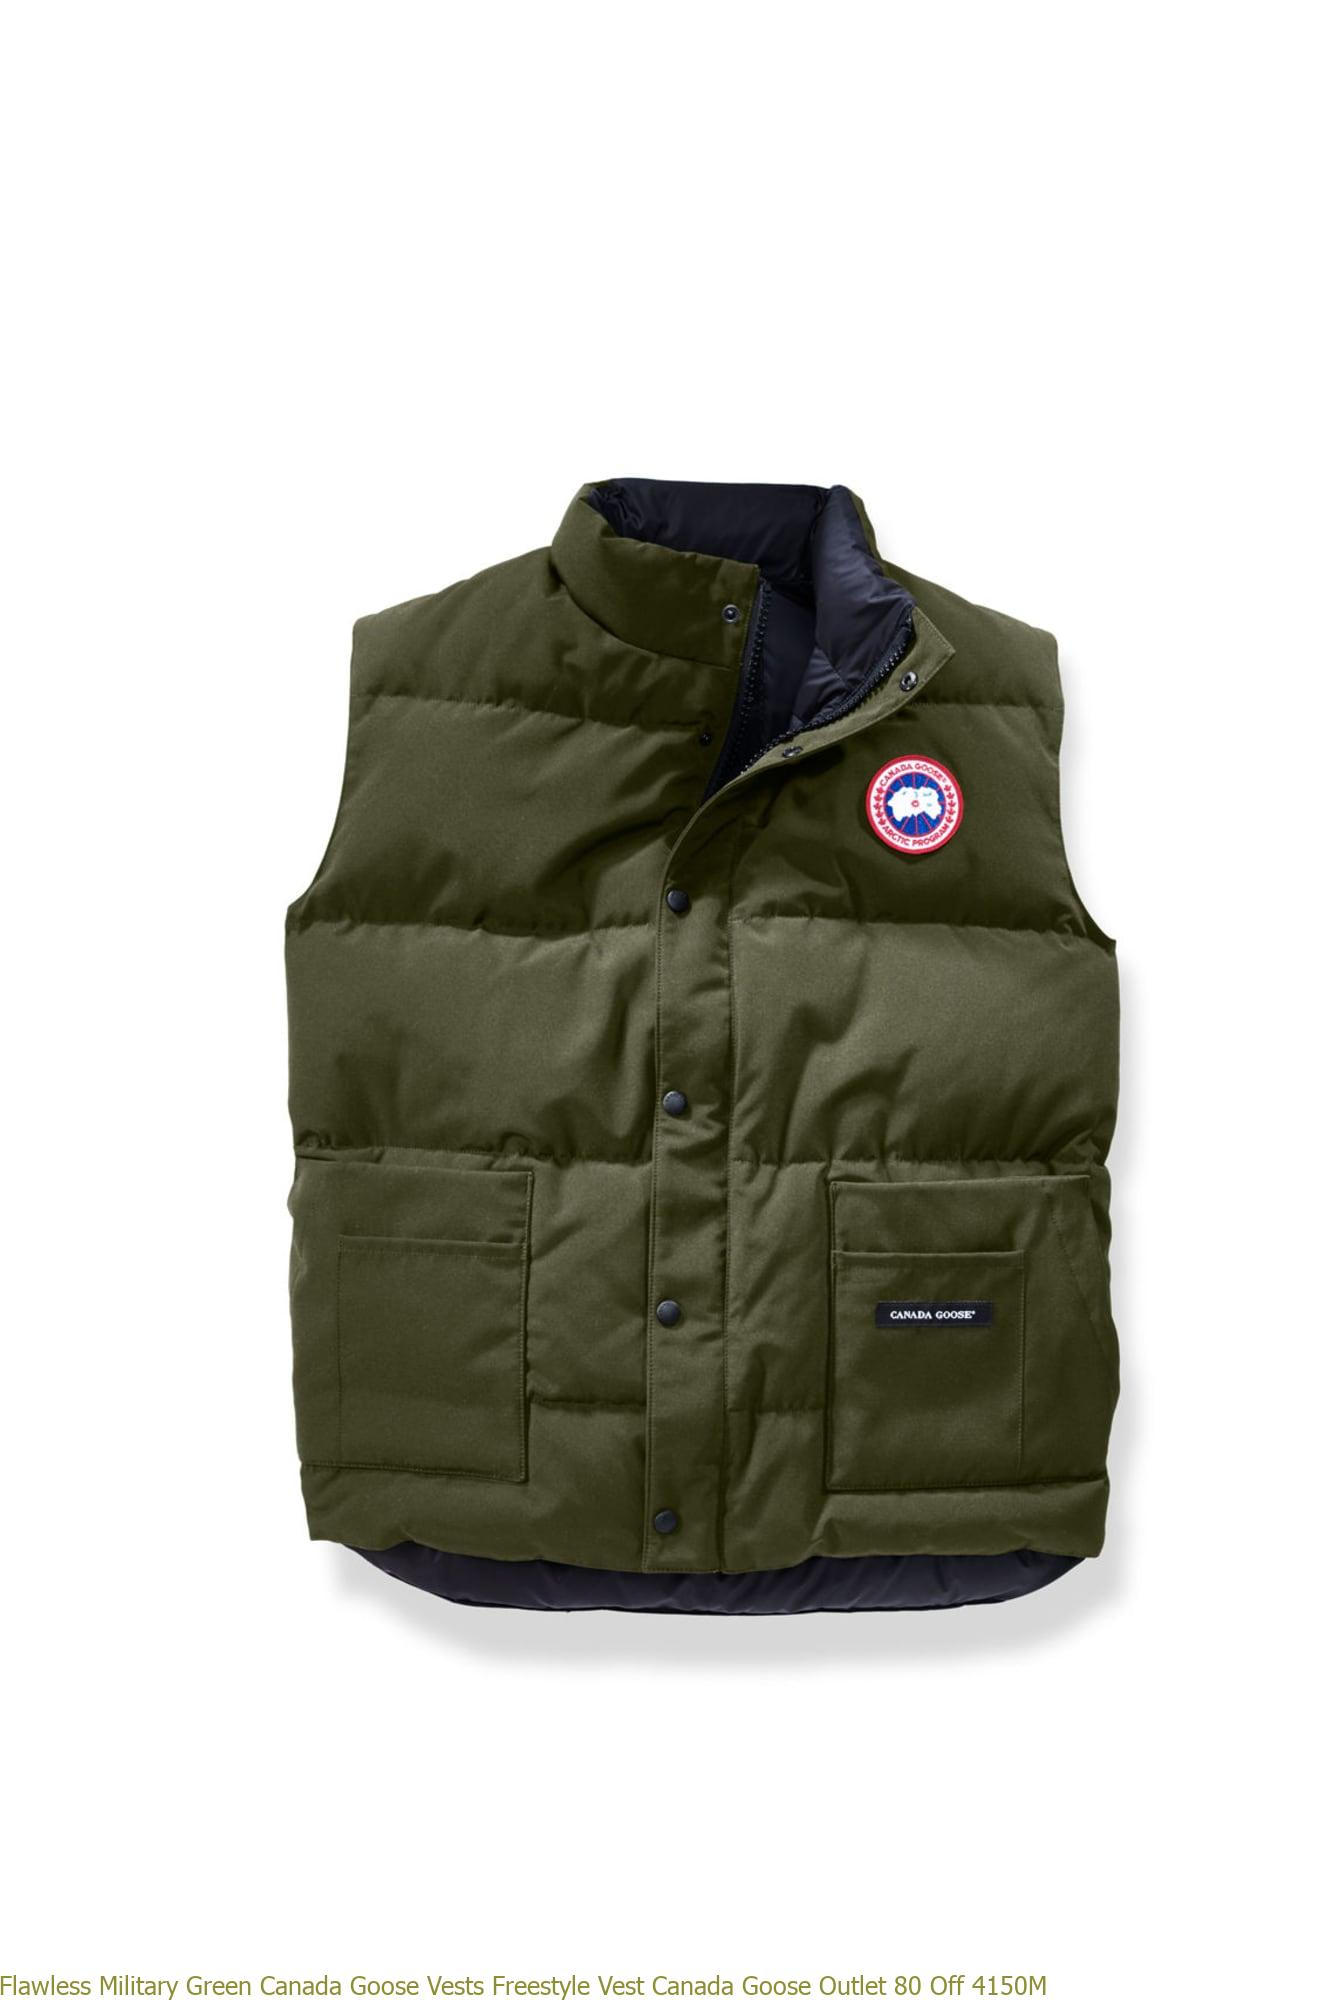 Cheap Military Green Canada Goose Vests Freestyle Vest Canada Goose Outlet England 2832L